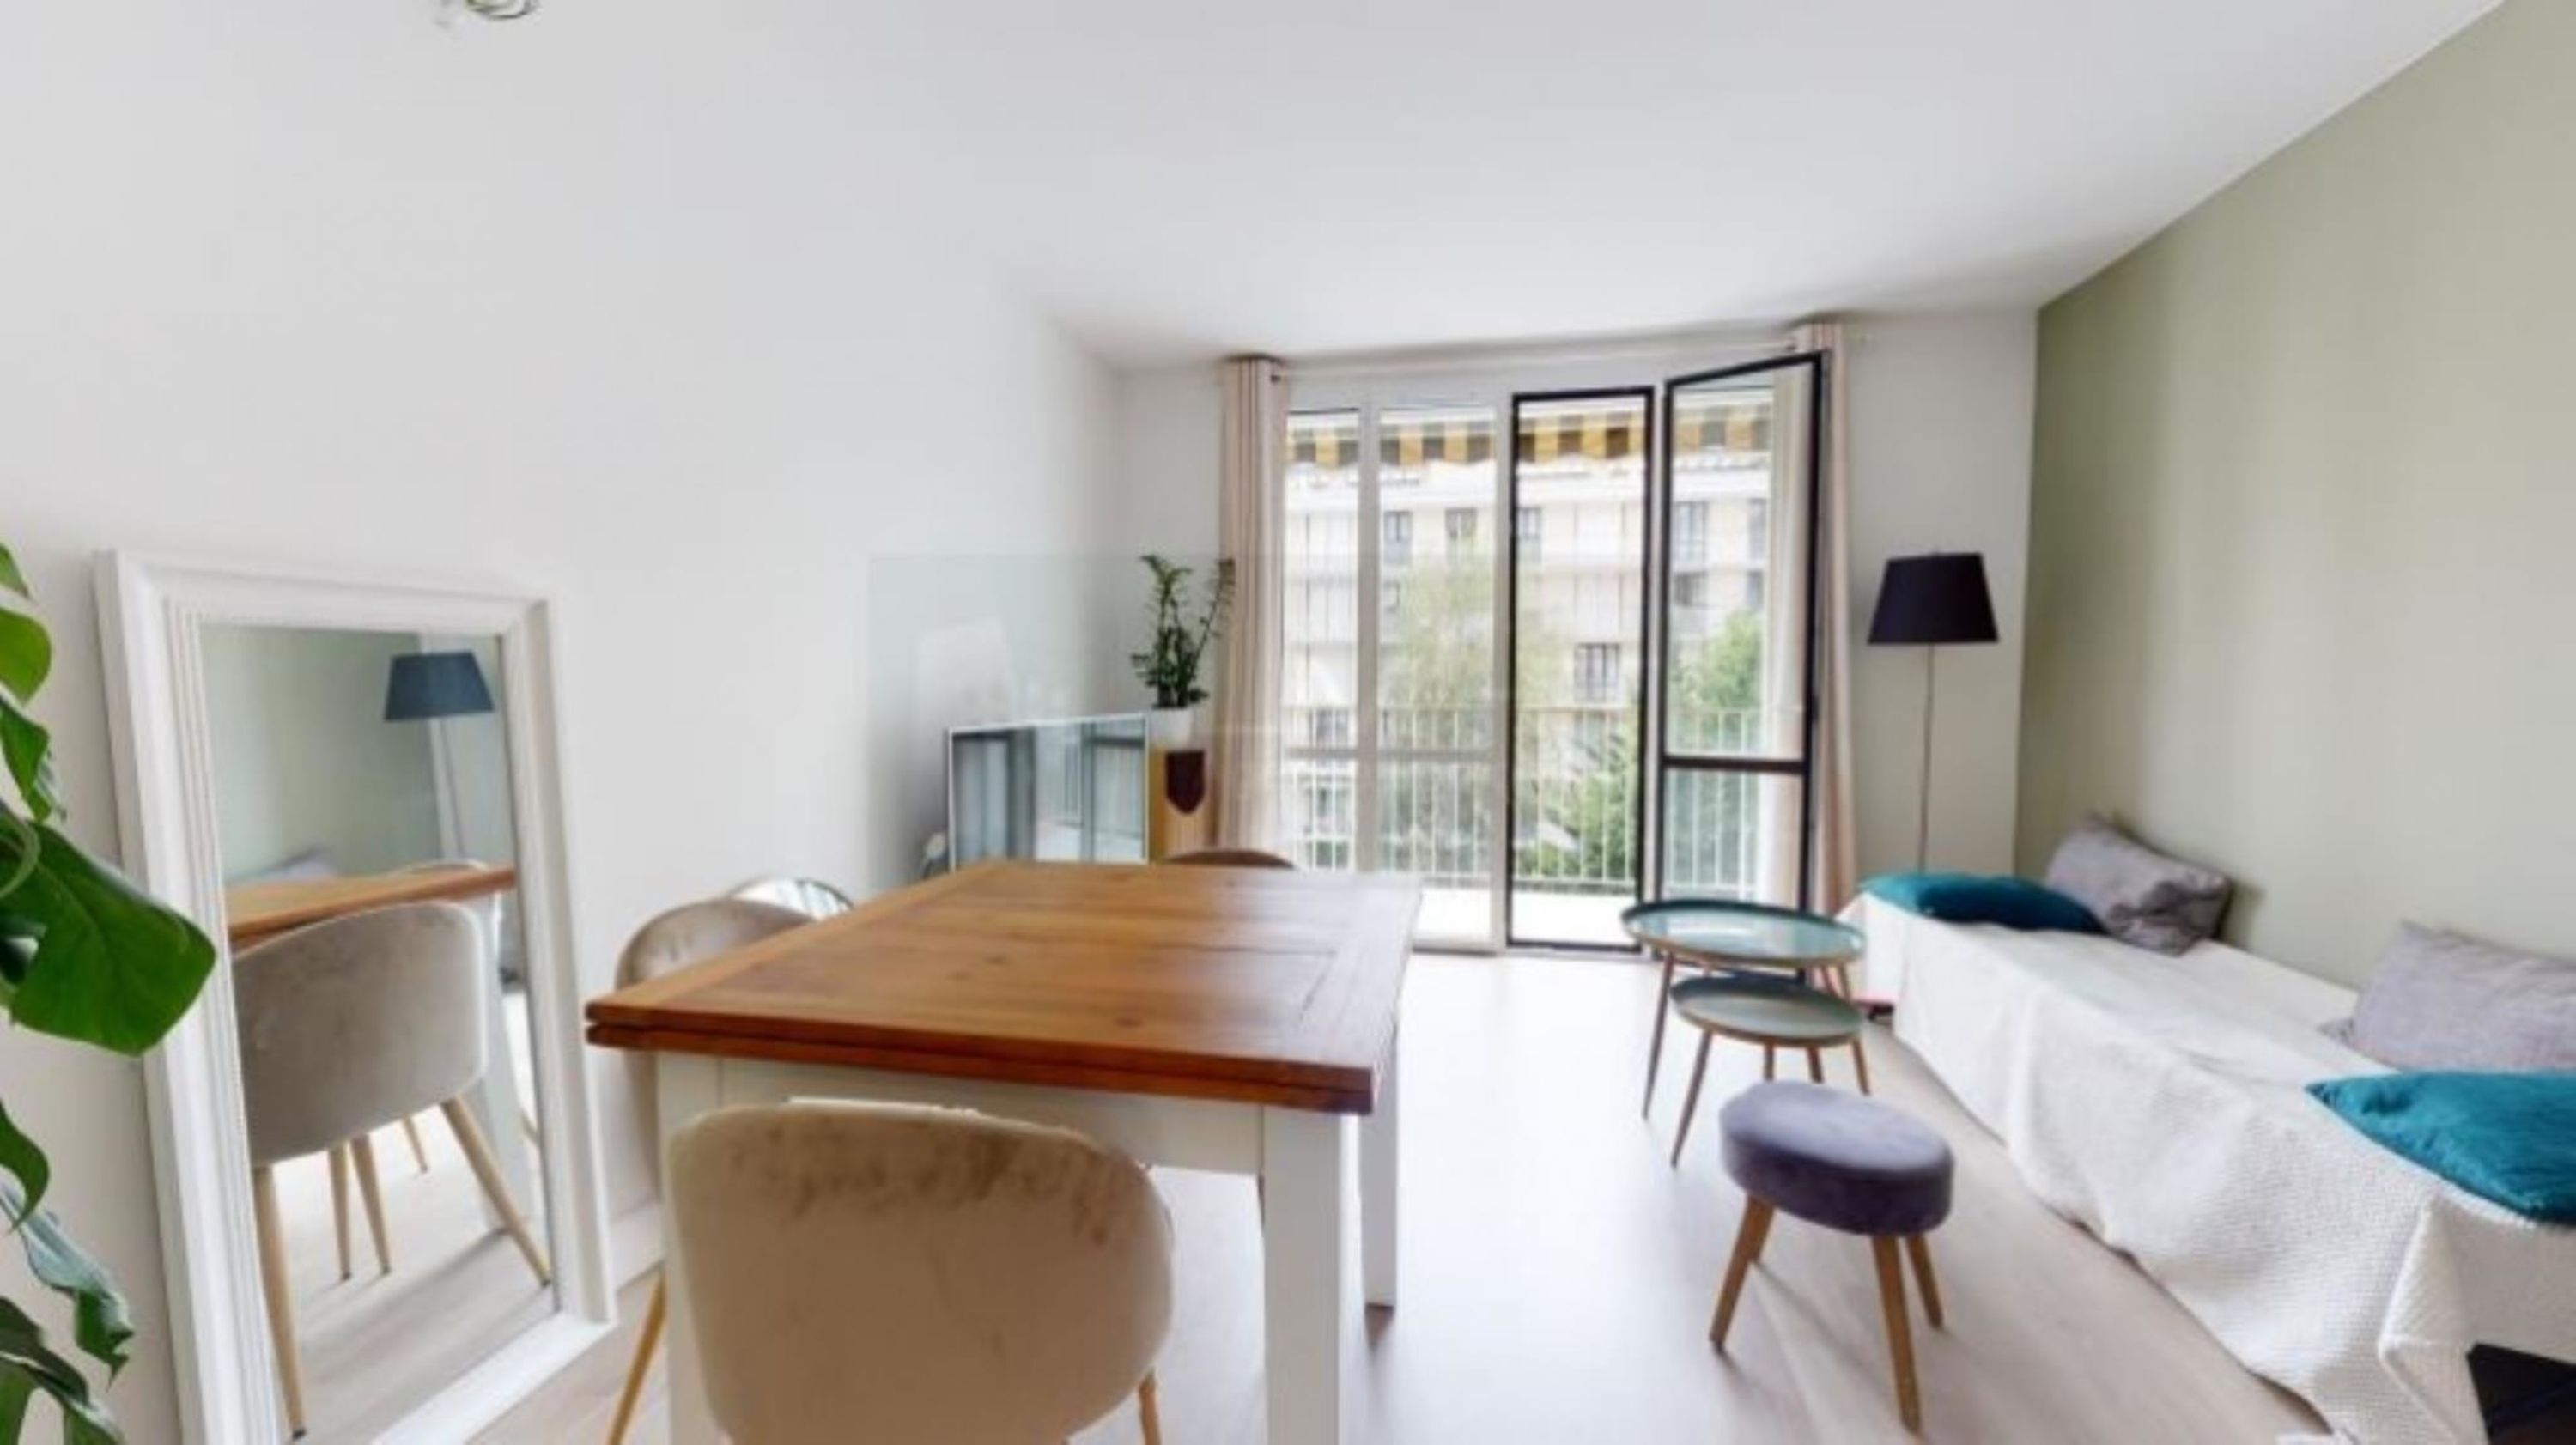 agence immobilière sevres 92 le chesnay 78 achat vente location appartement maison immobilier LMHT ANF HCEQIHTF